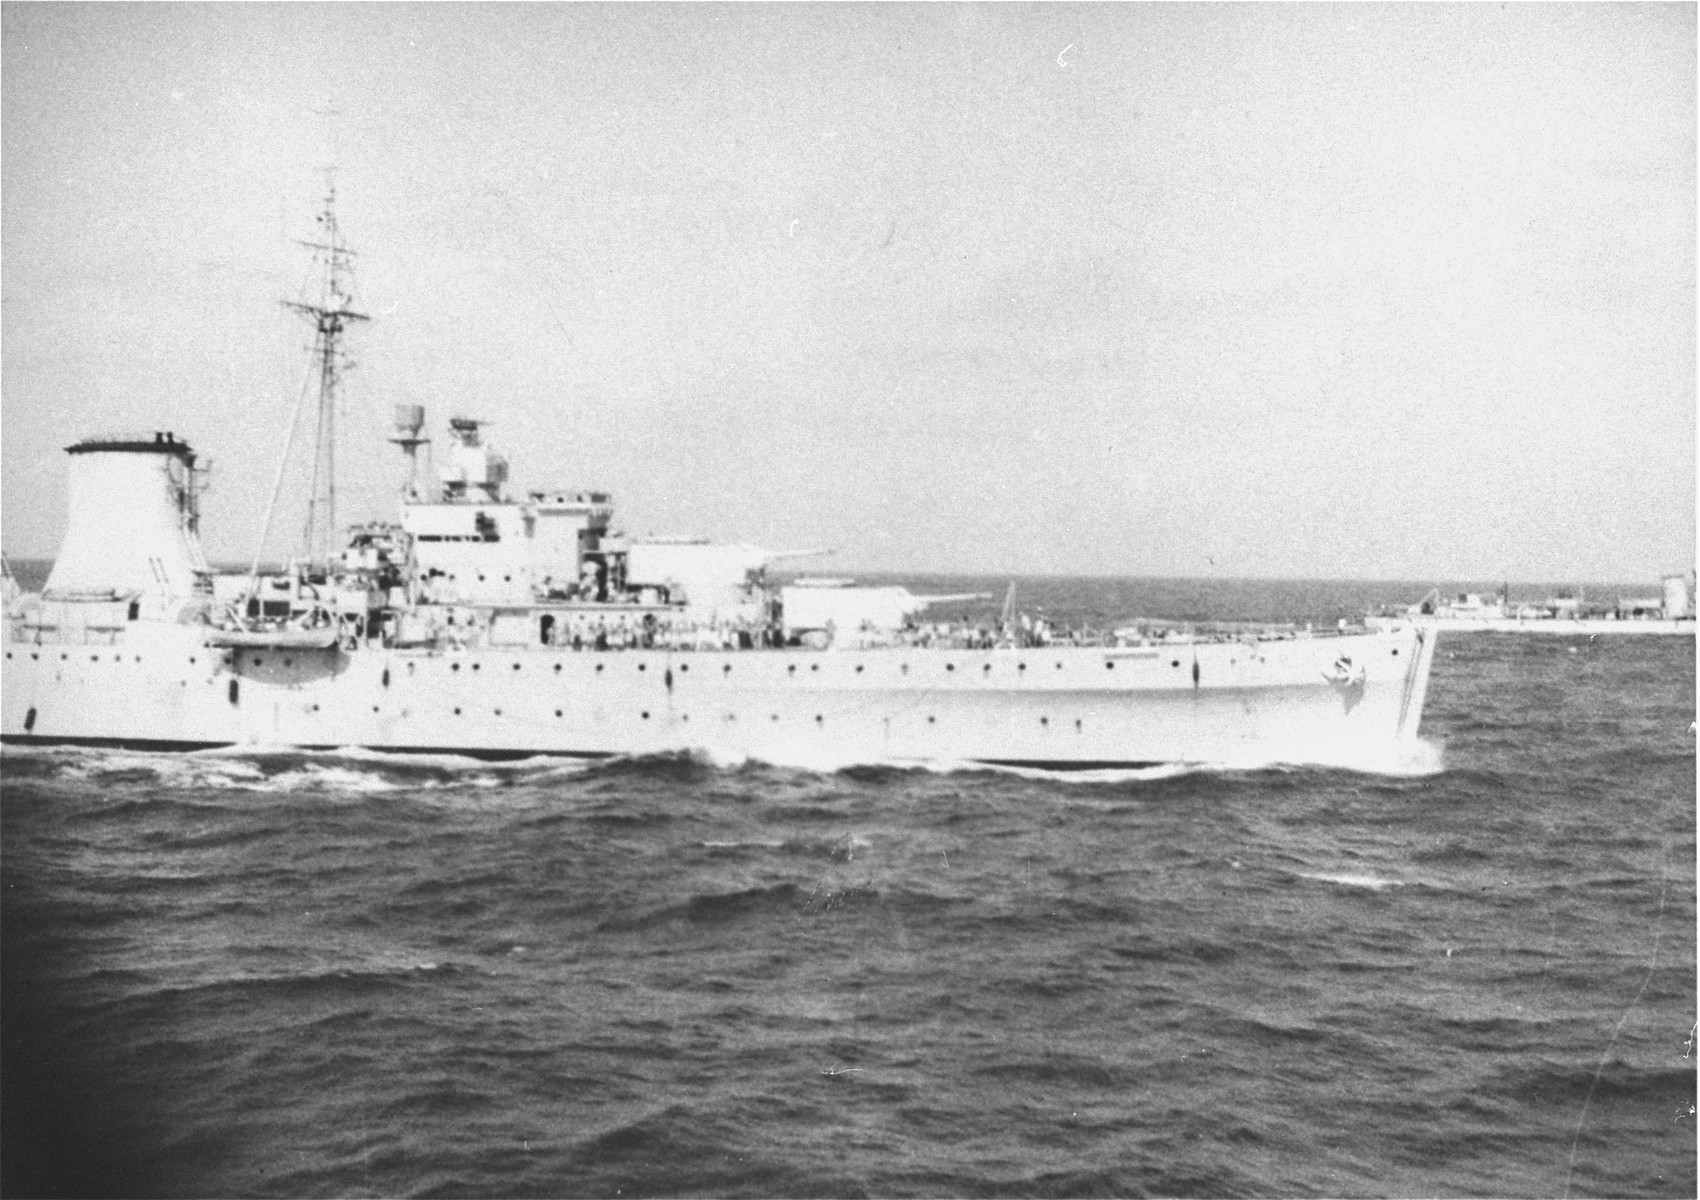 Two British warships that have been dispatched to prevent the landing of the Exodus 1947, approach the illegal immigrant ship off the coast of Palestine.